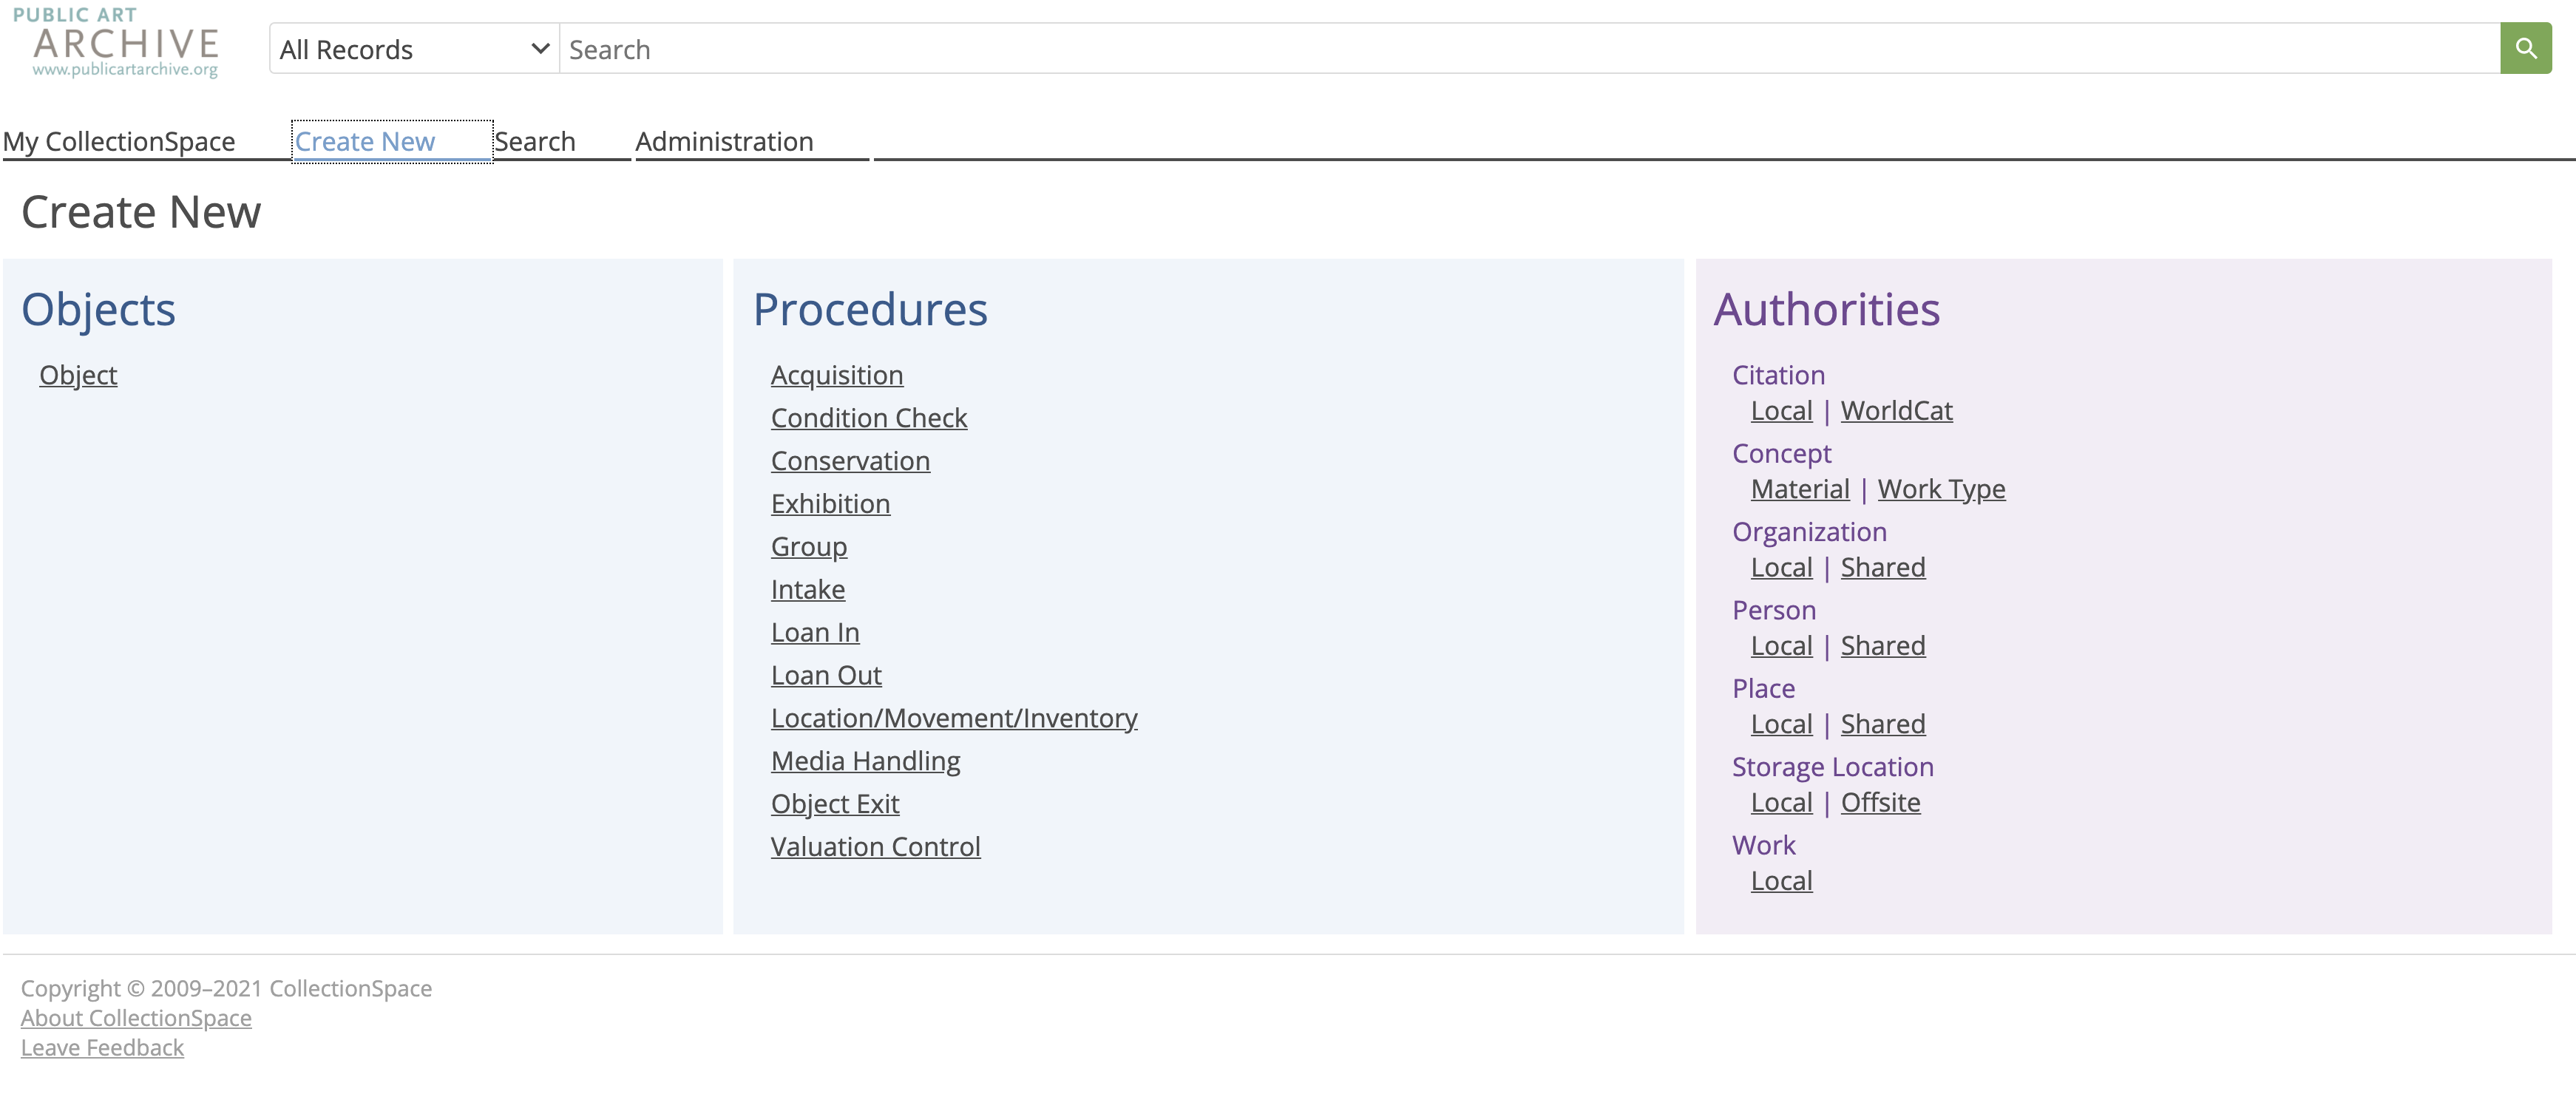 Image of the Public Art Archive Collection Management System